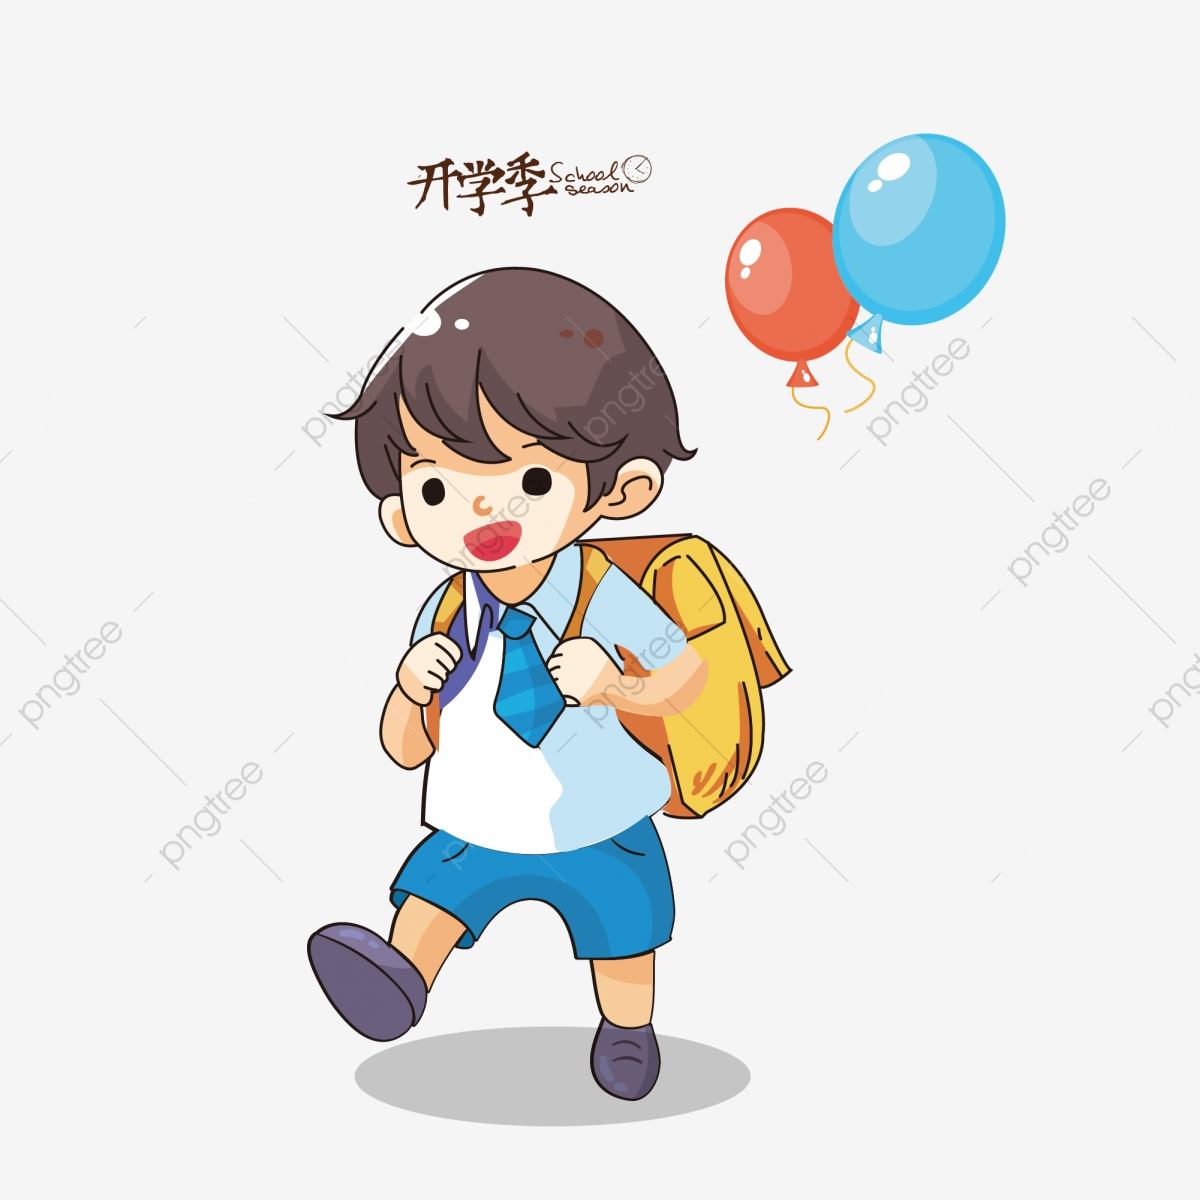 Cartoon Student Png Images Vector And Psd Files Free Download On Pngtree